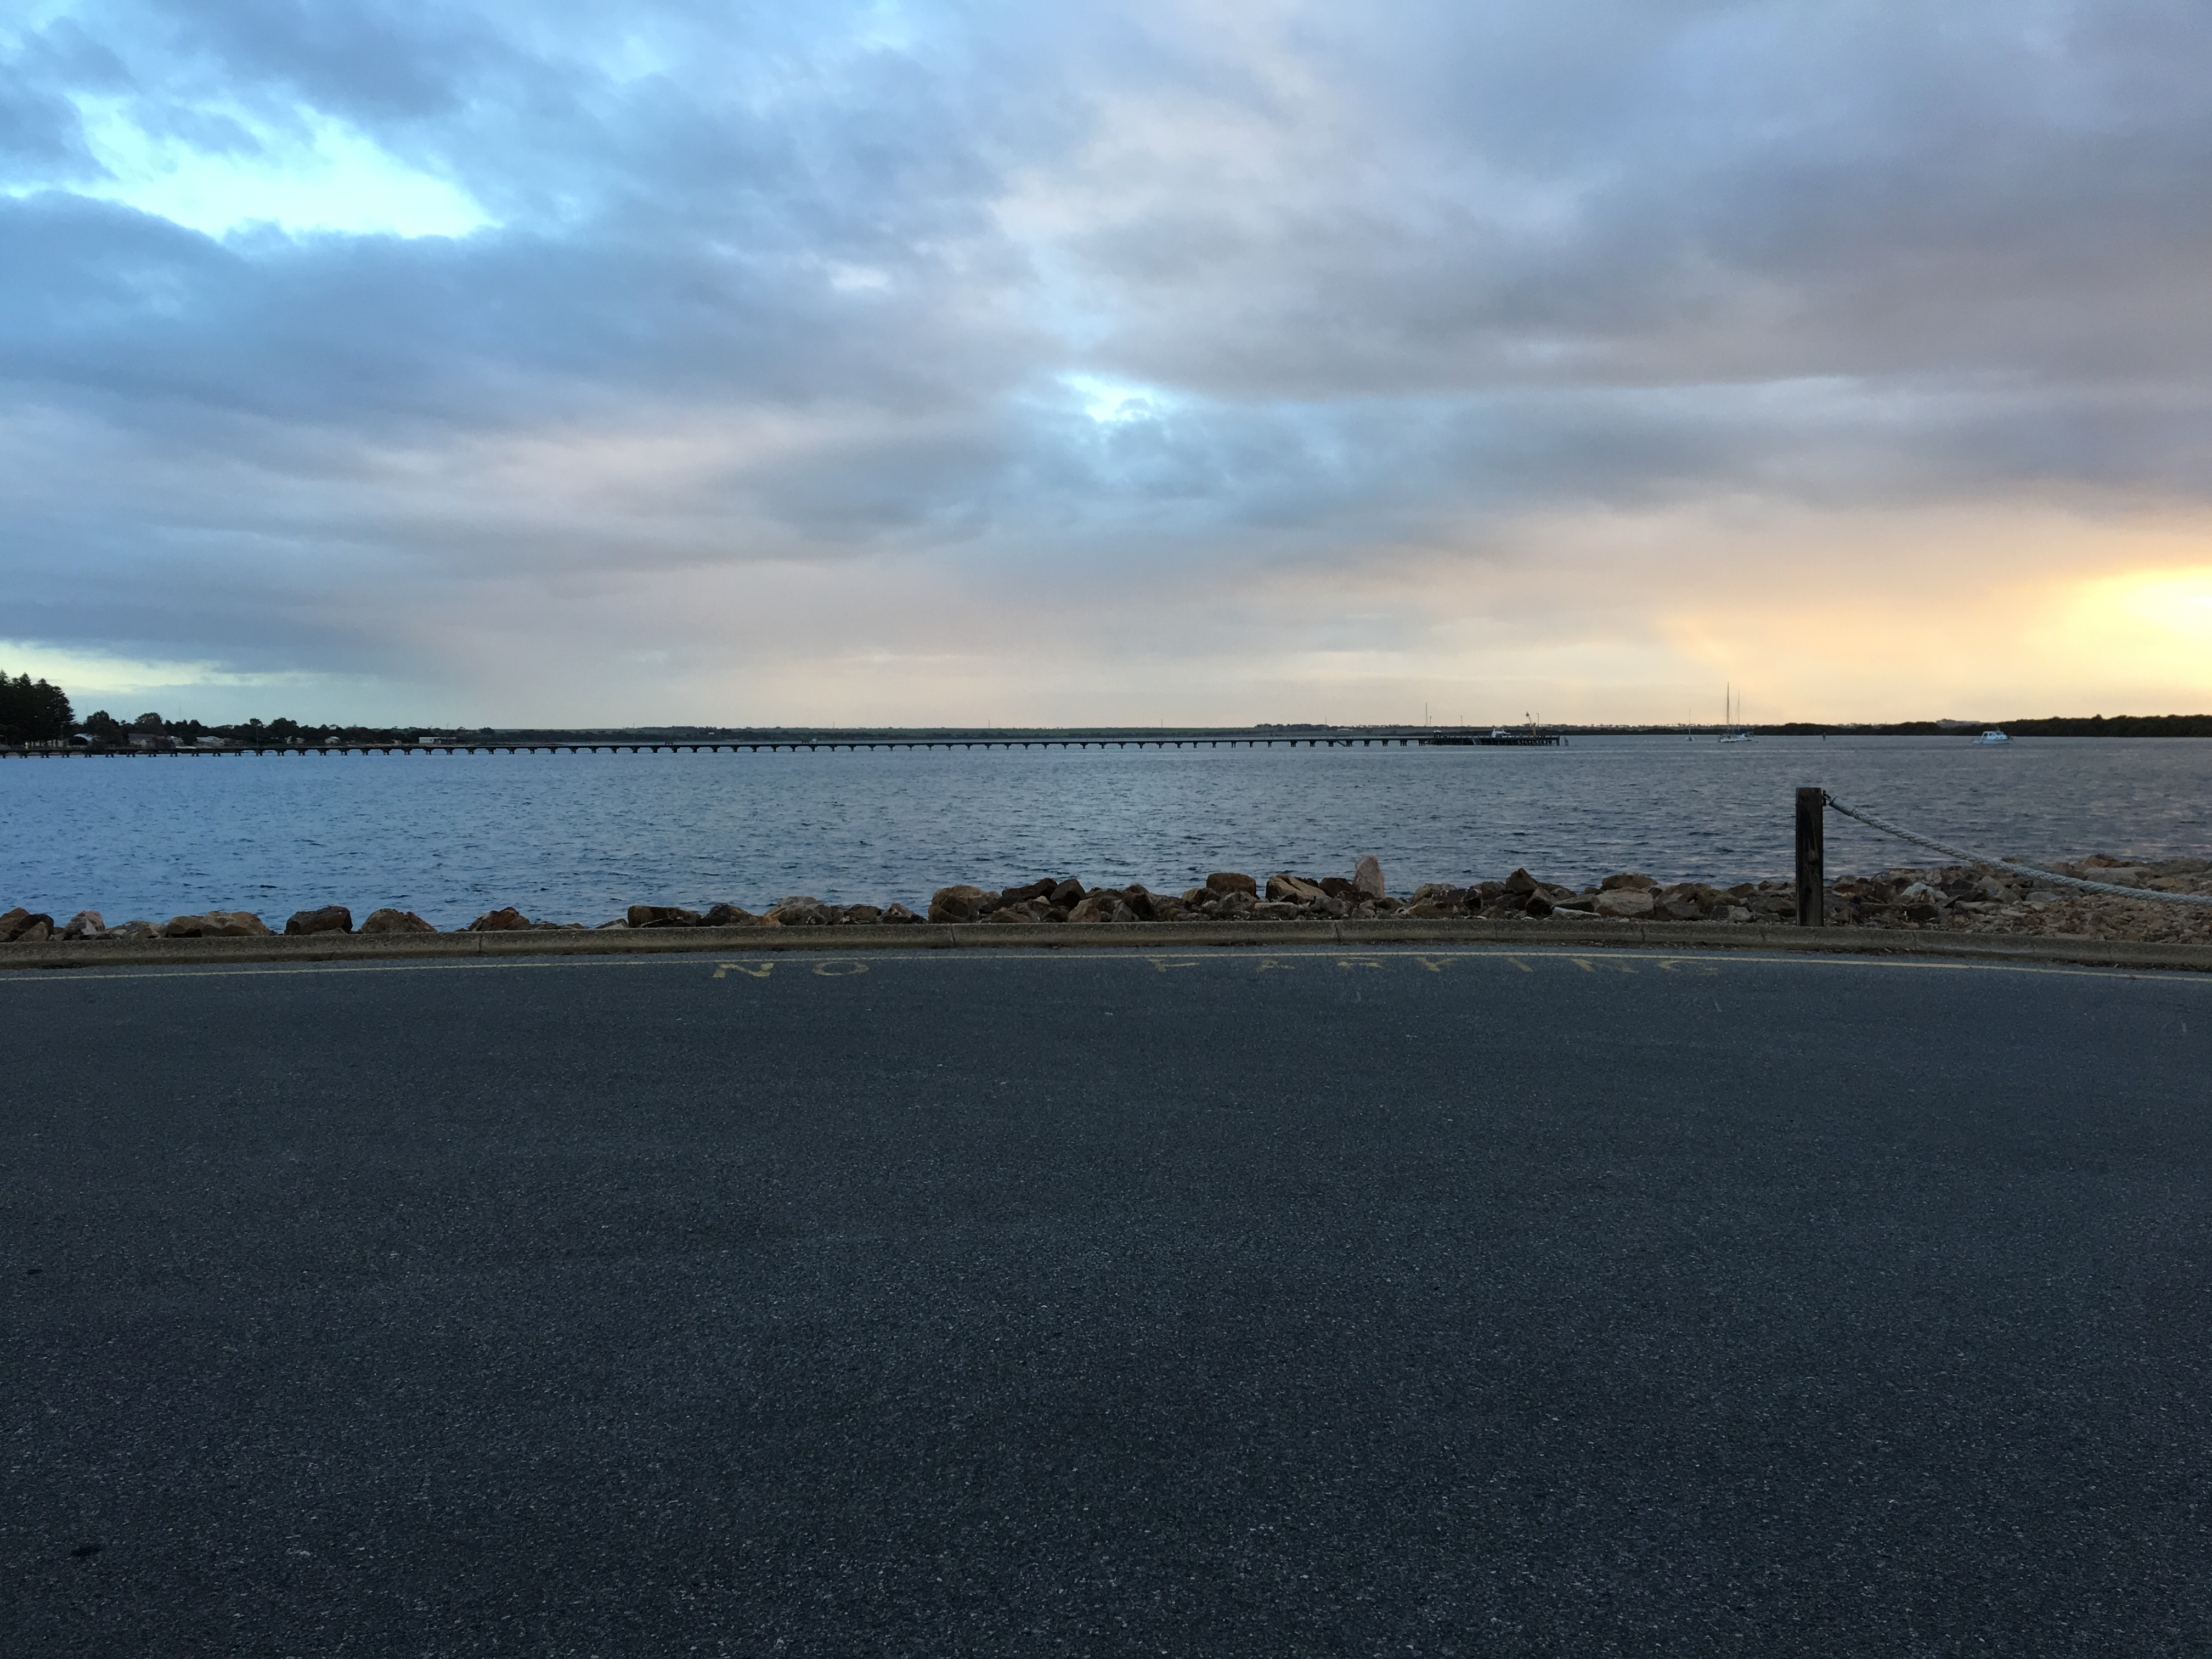 View of the Port Broughton Jetty